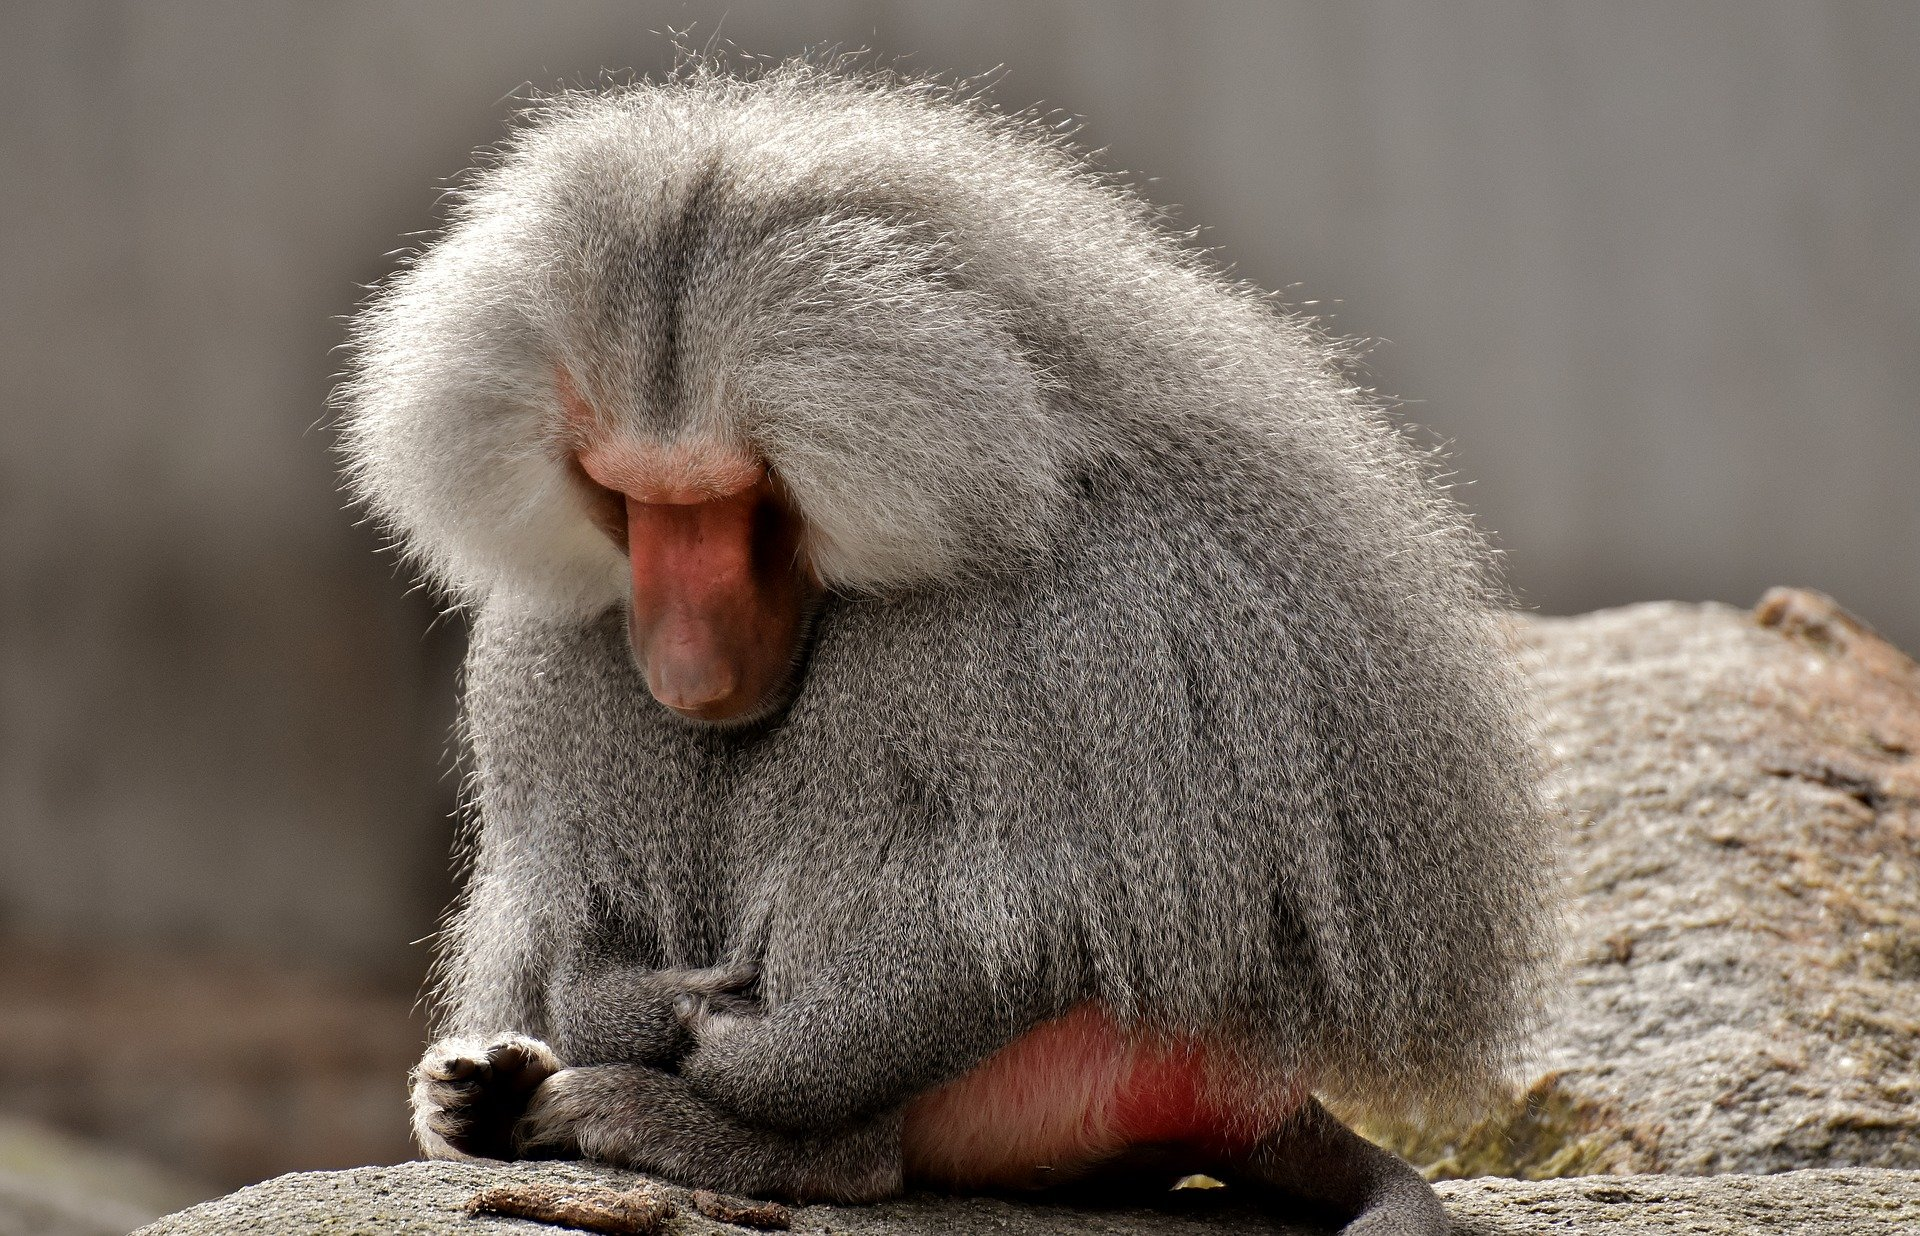 Why did Dr Sapolsky choose Baboons to study stress?